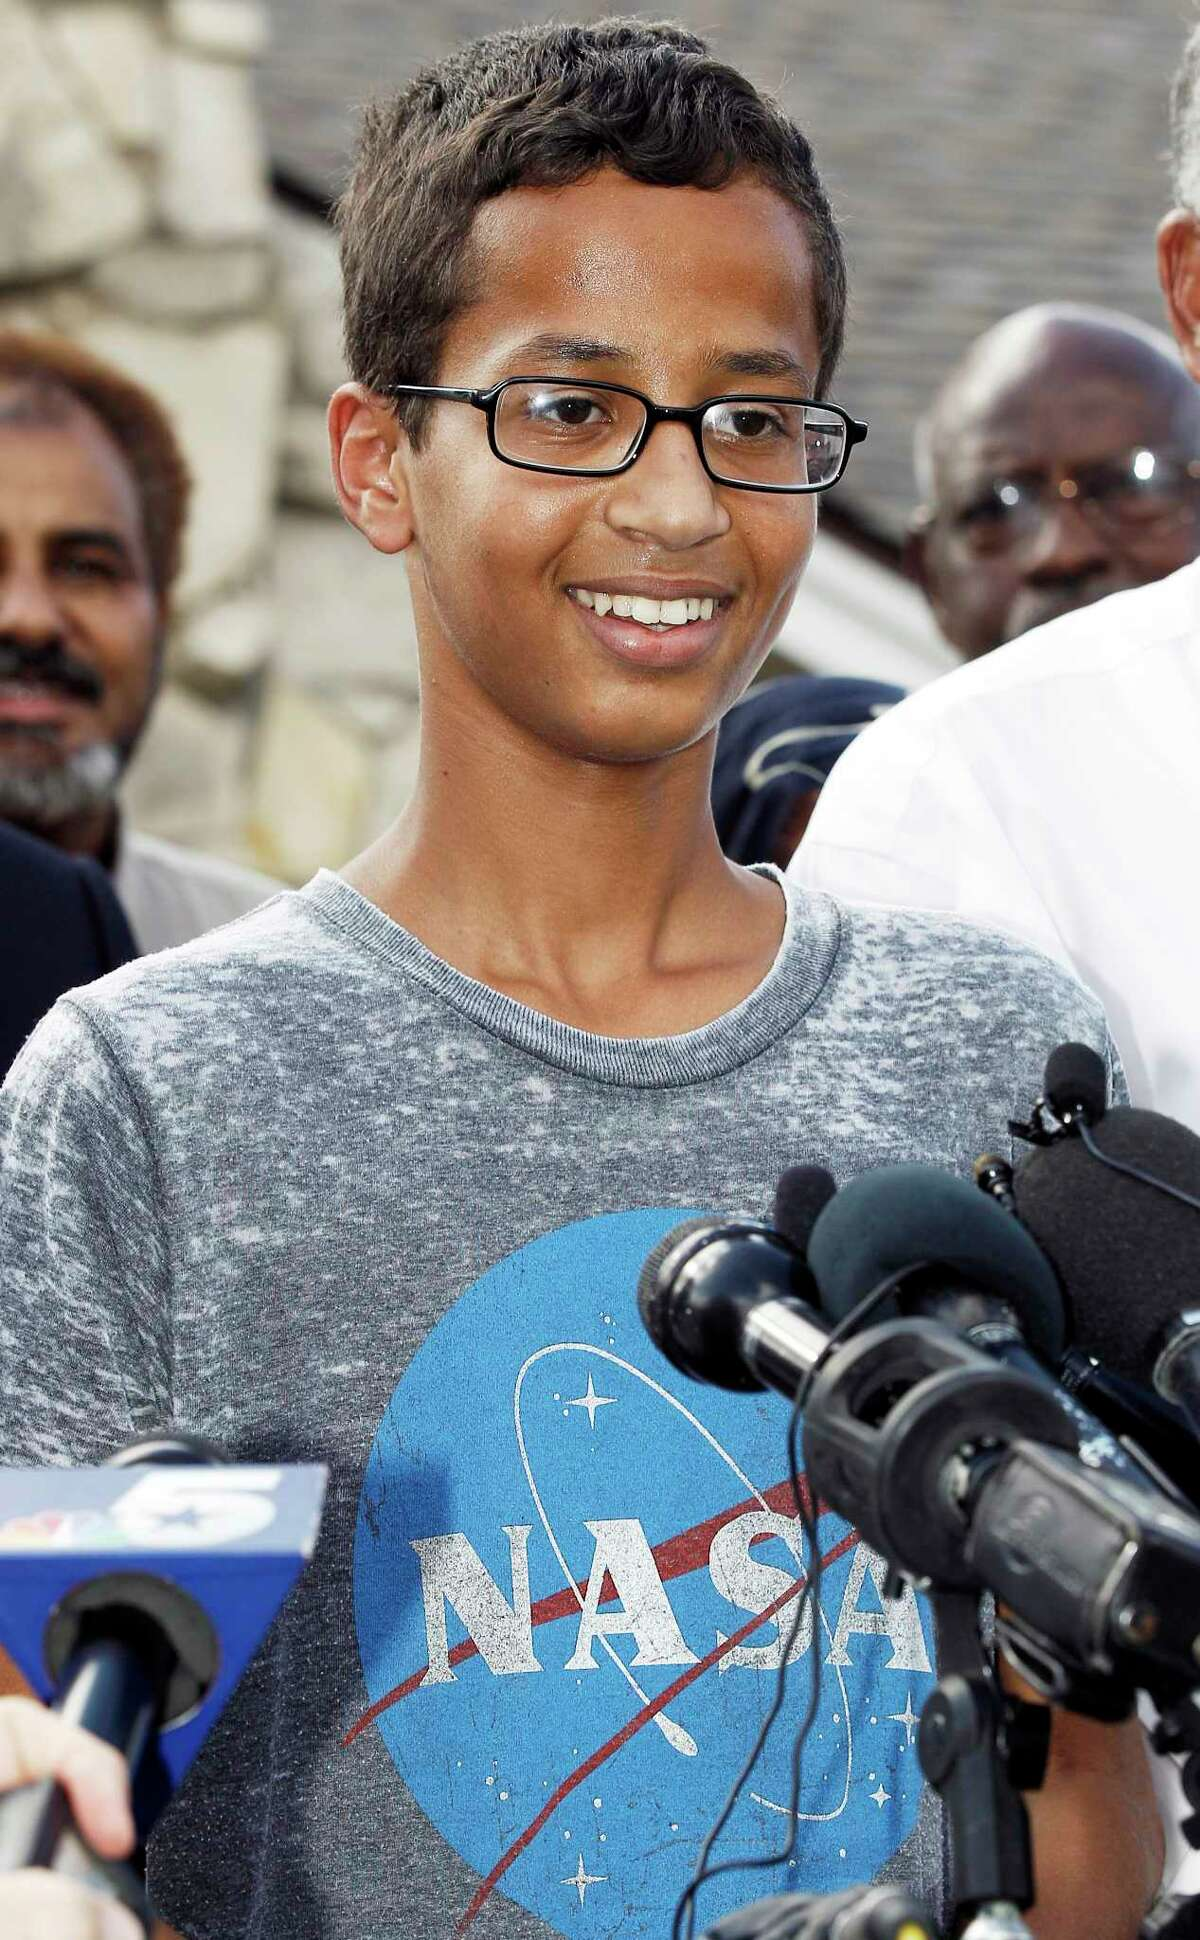 In this Sept. 16, 2015 photo, Ahmed Mohamed, 14, thanks supporters during a news conference at his home in Irving, Texas. The arrest and three-day suspension of Mohamed, whose teacher mistook his homemade clock for a bomb, led to widespread ridicule of school officials and accusations that Islamophobia may have played a part. Ahmed's suspension reflects the rigid disciplinary policies that many U.S. schools adopted in the 1990s.